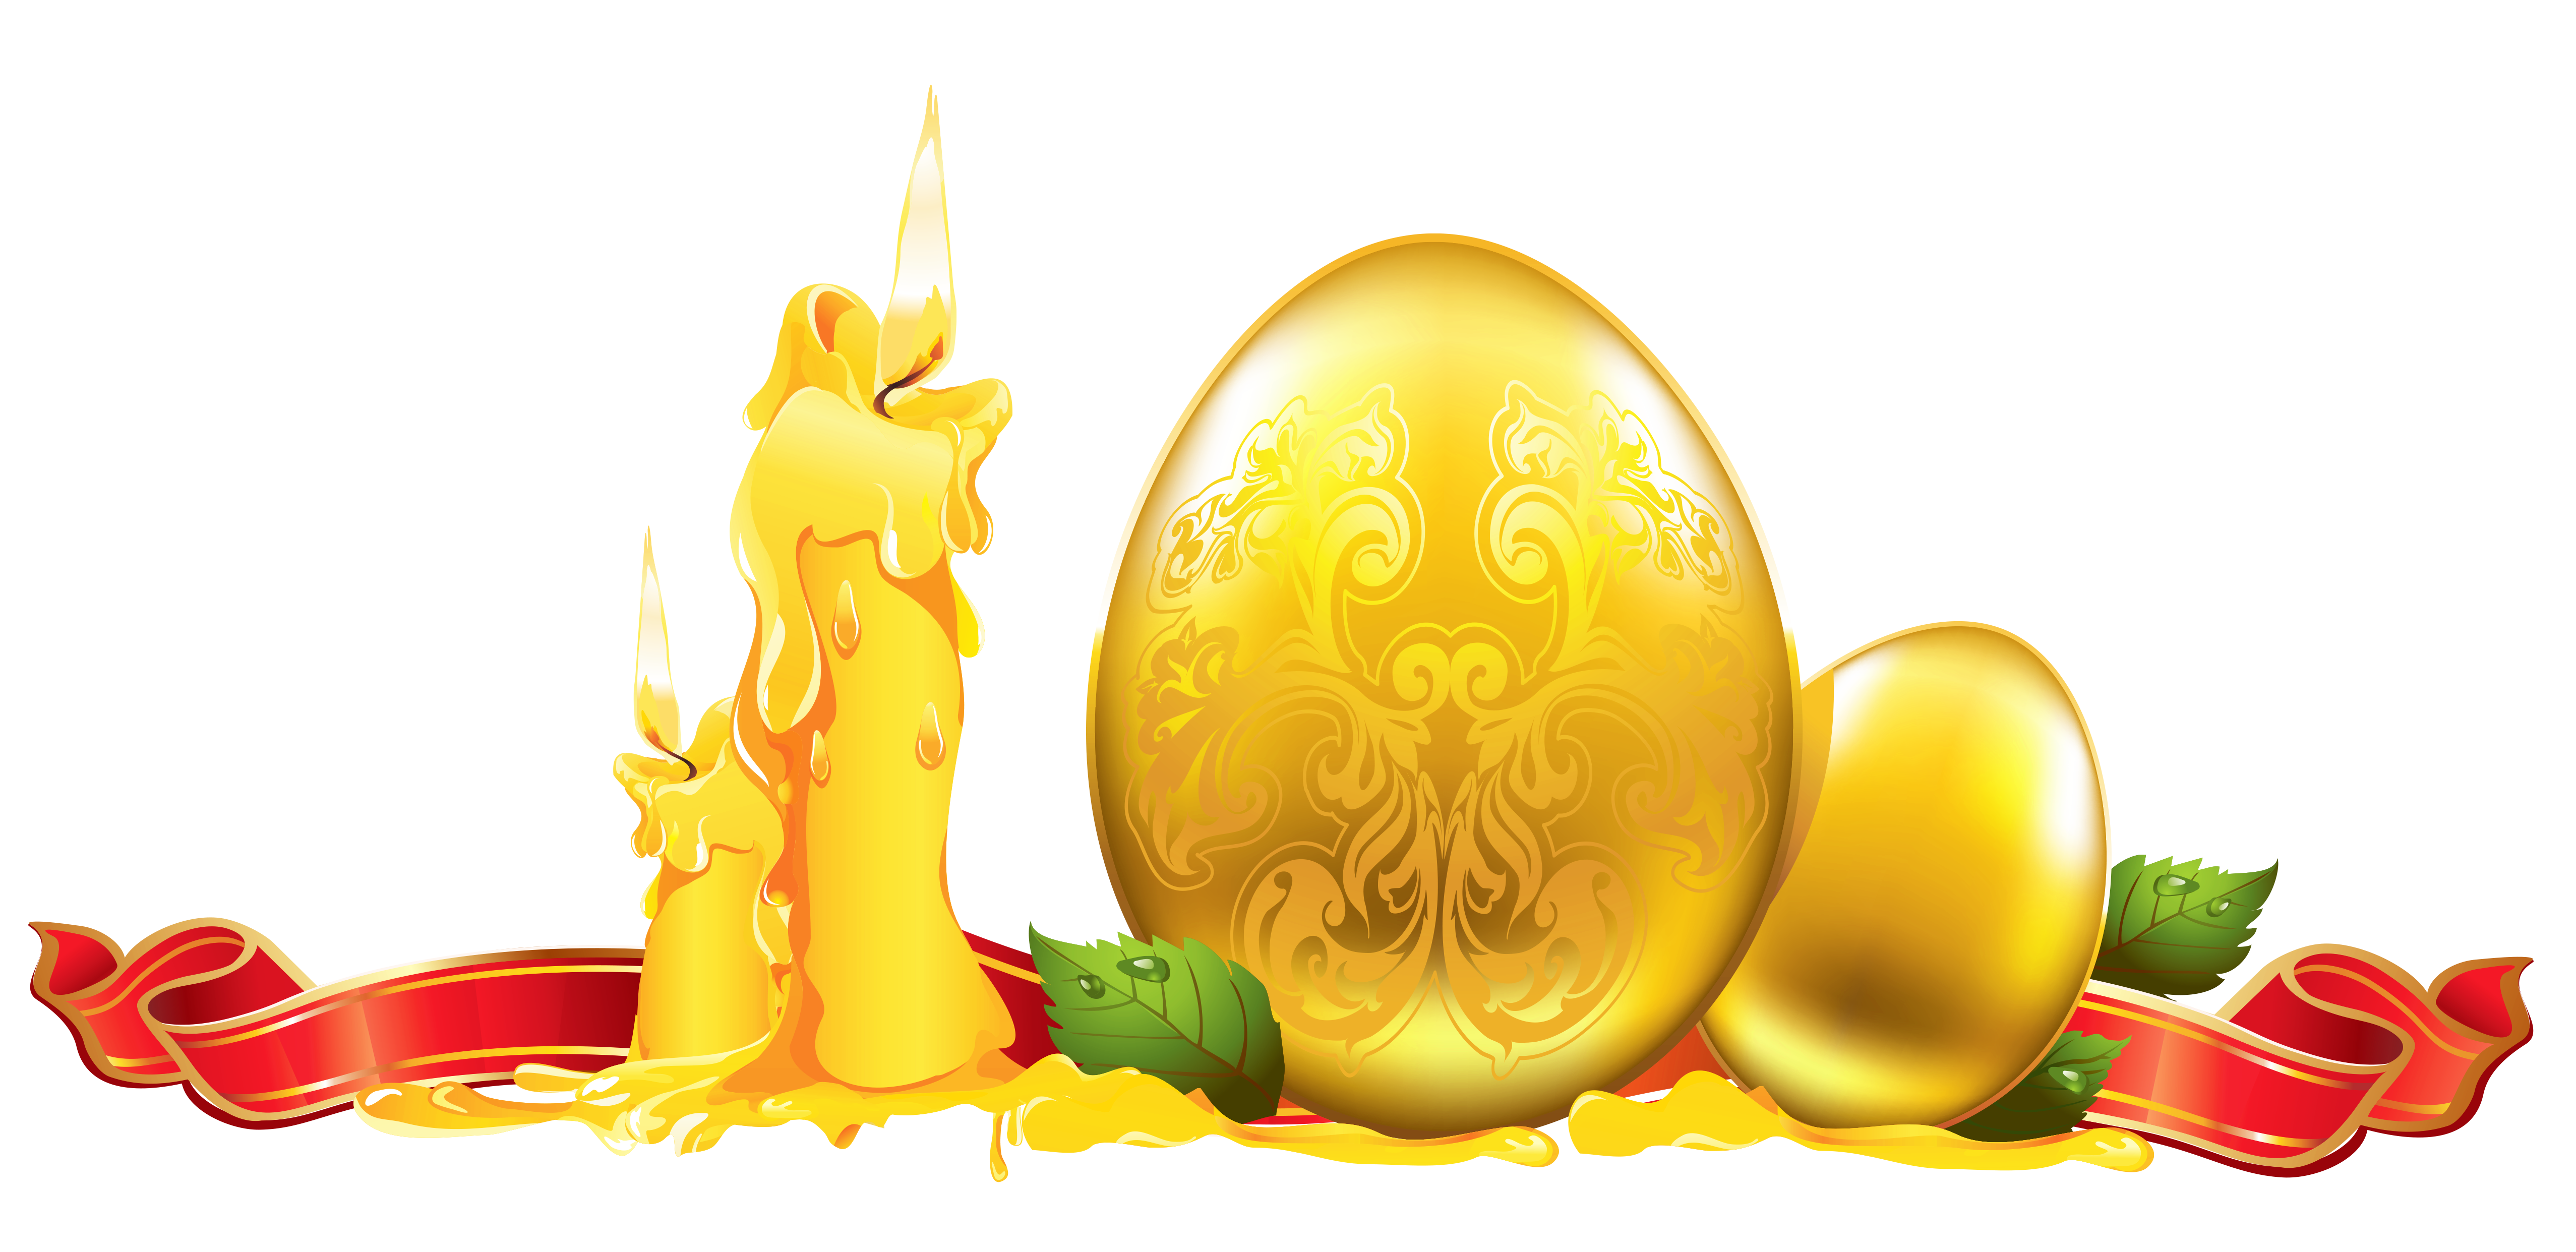 Easter decorations png. Golden decoration clipart gallery